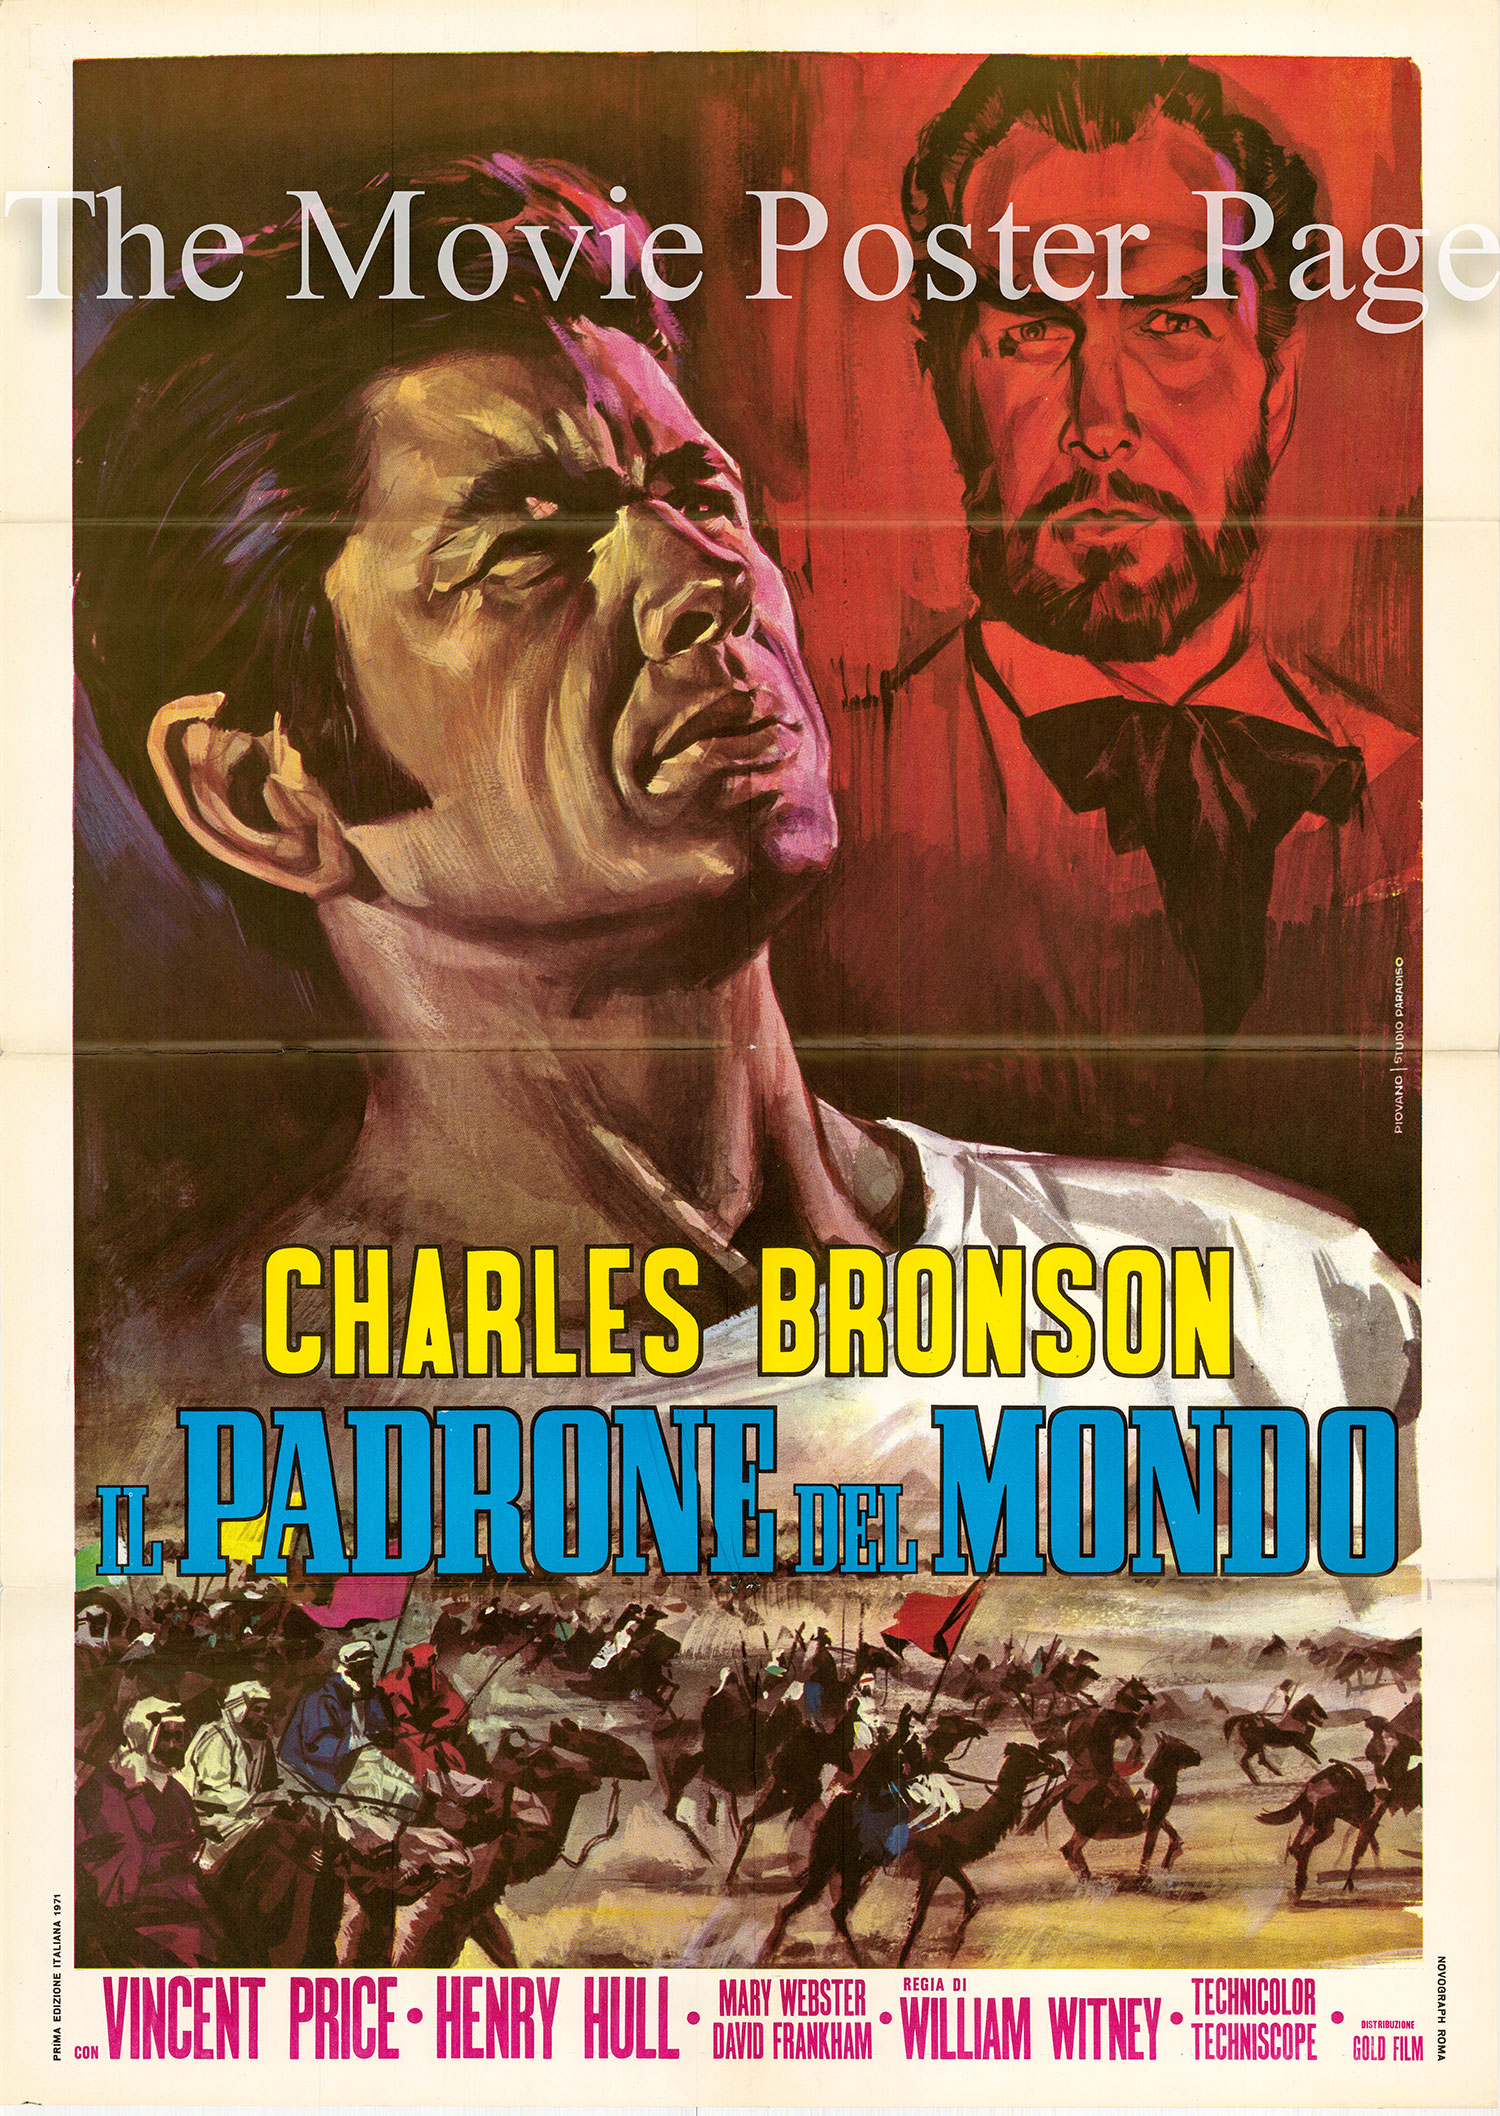 Pictured is an Italian two-sheet poster for the 1961 William Witney film Master of the world starring Vincent Price and Charles Bronson.